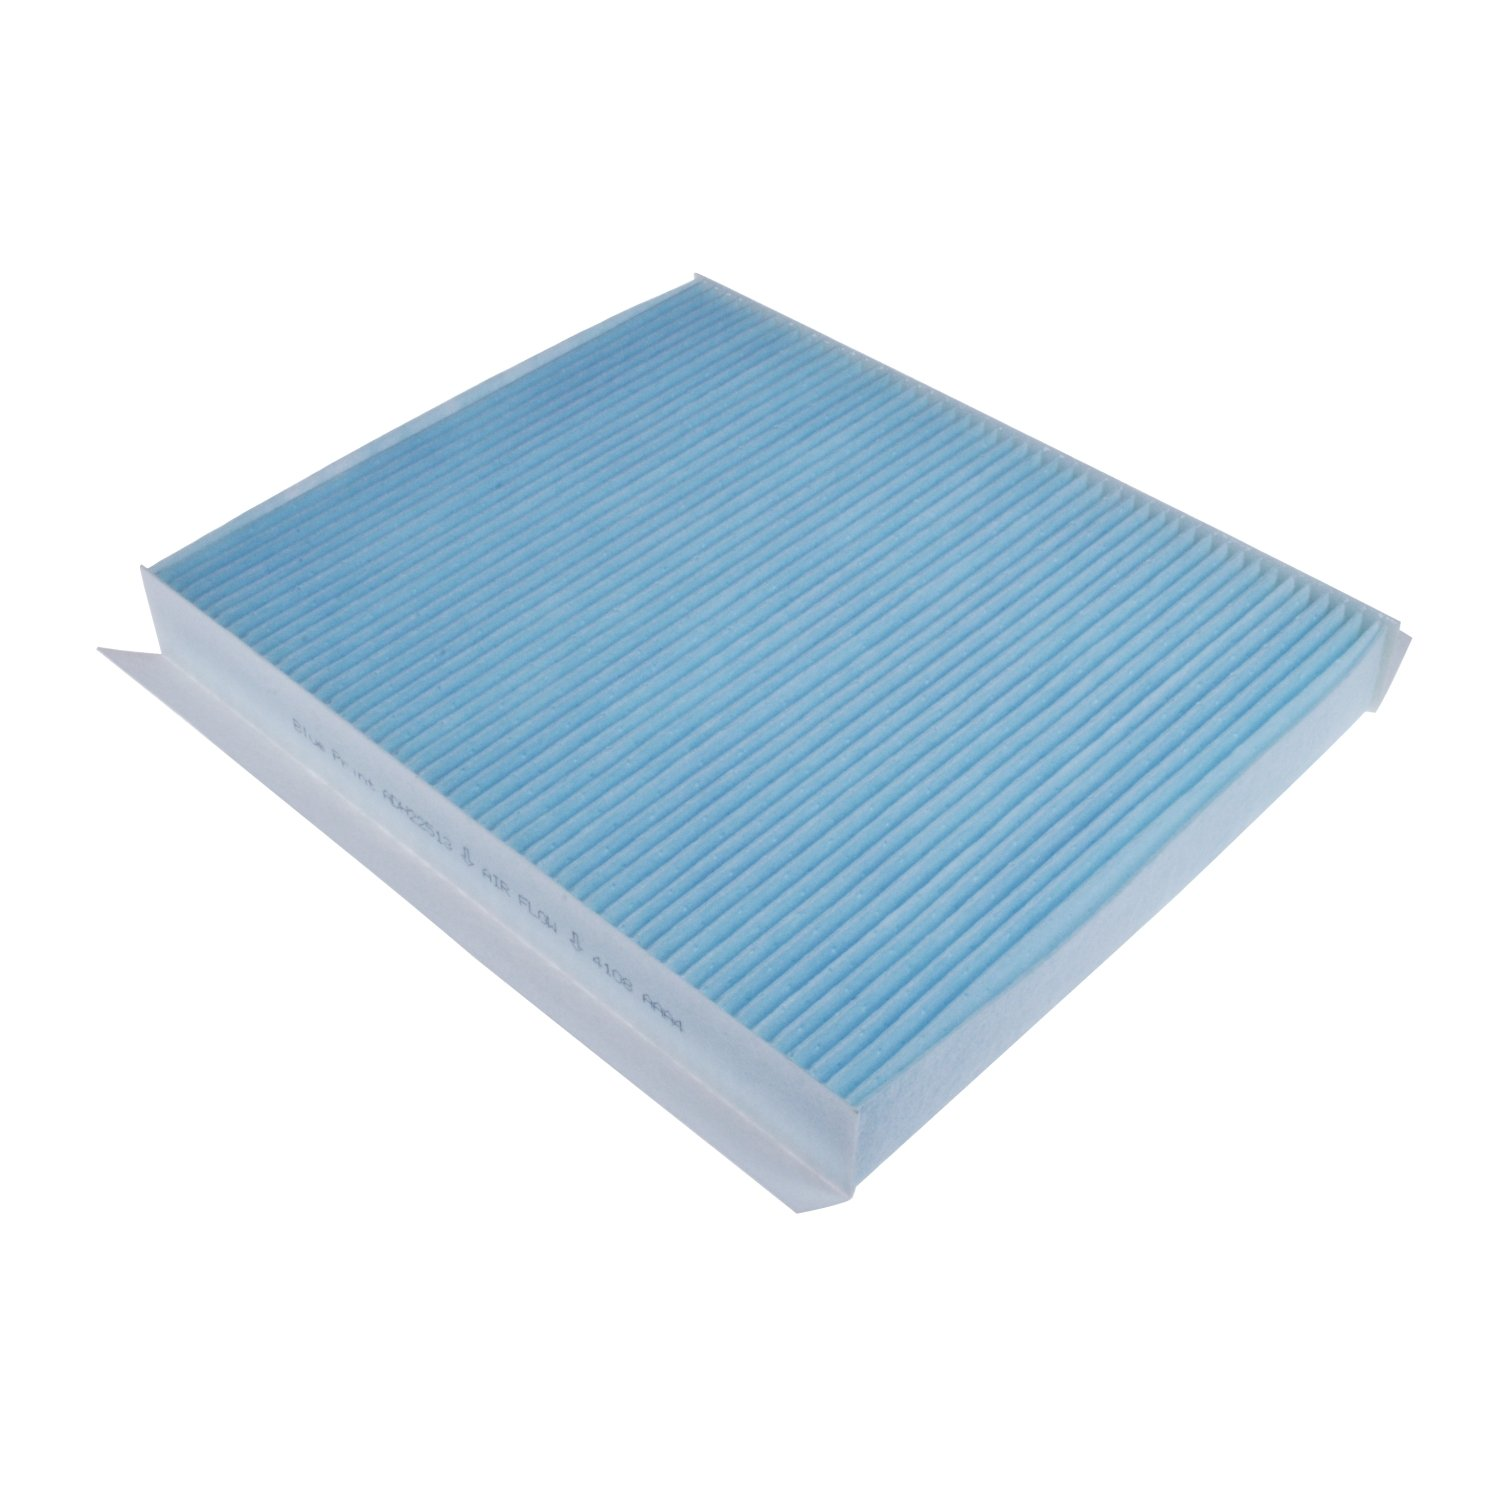 Blue Print ADH22513 cabin filter - Pack of 1 Automotive Distributors Limited